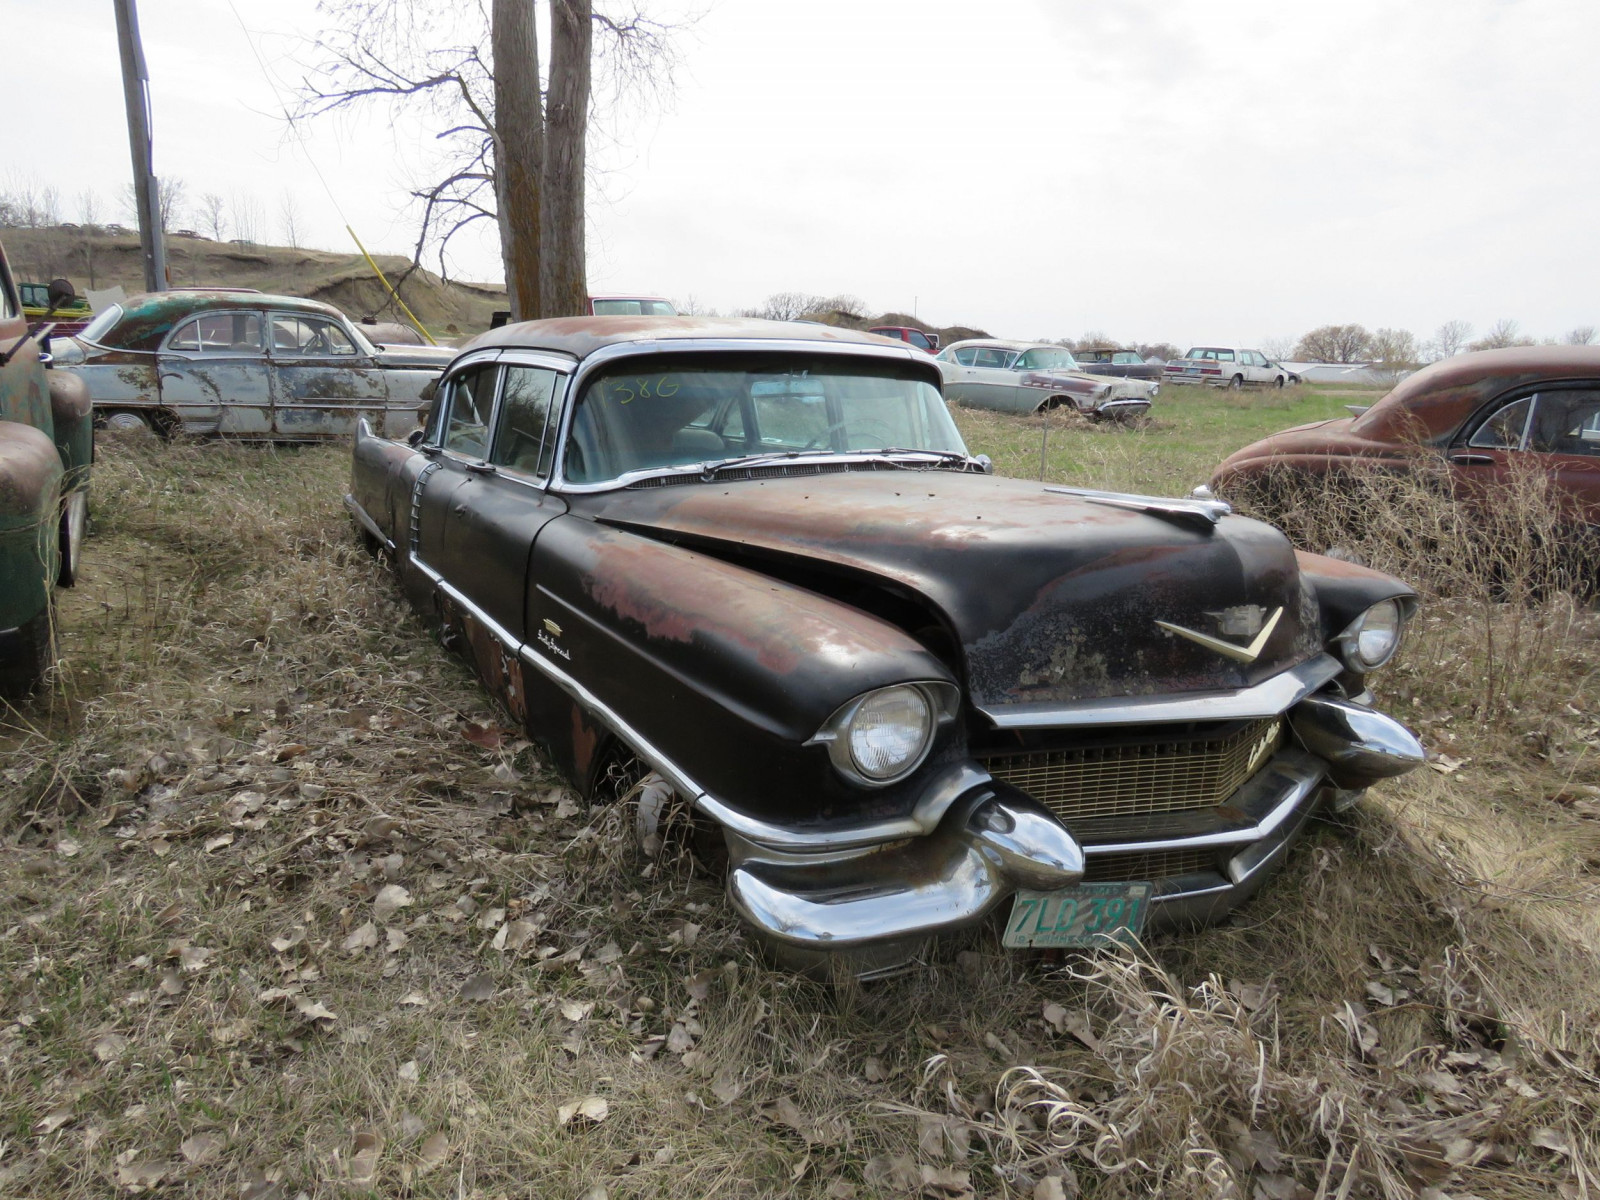 1956 Cadillac Fleetwood 4dr Sedan 5660119185 Sixty Special - Image 1